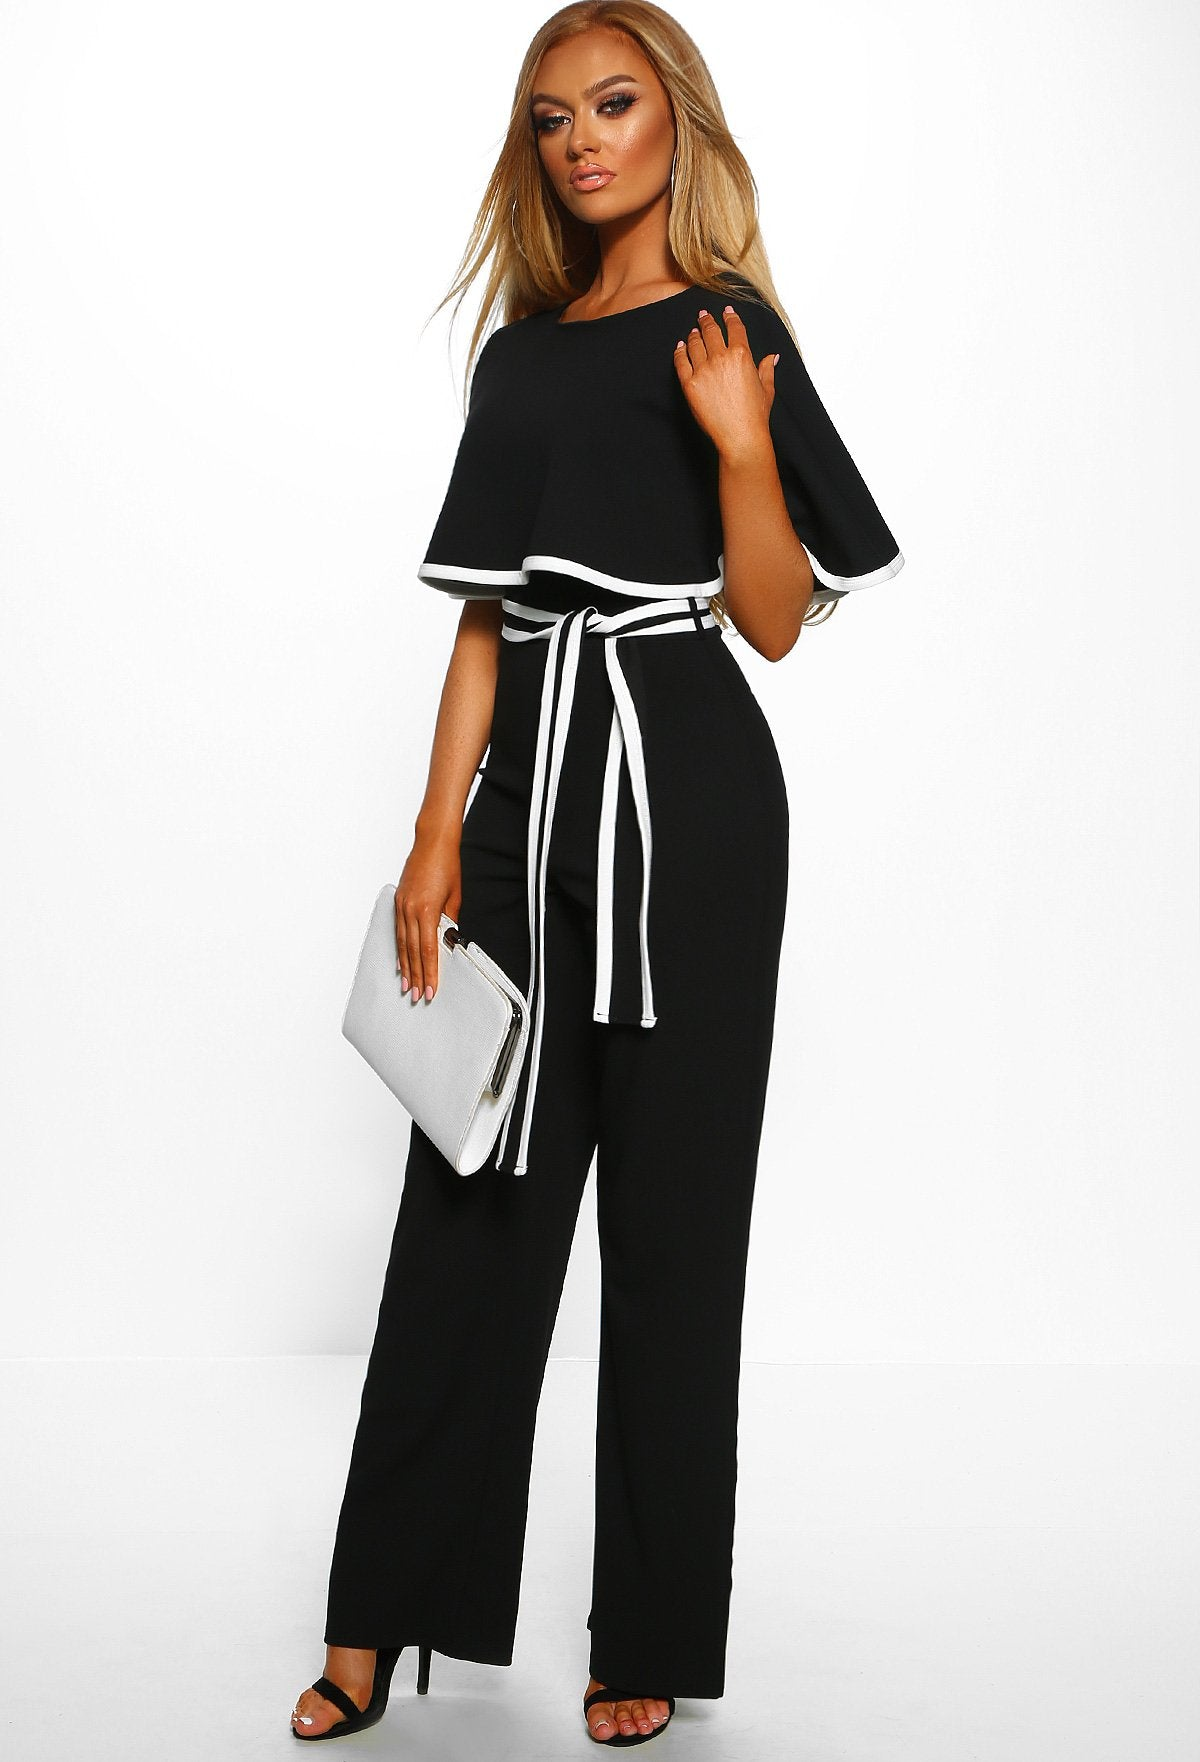 b81f98bfbaf Hold Your Own Black Double Layer Wide Leg Jumpsuit – Pink Boutique UK